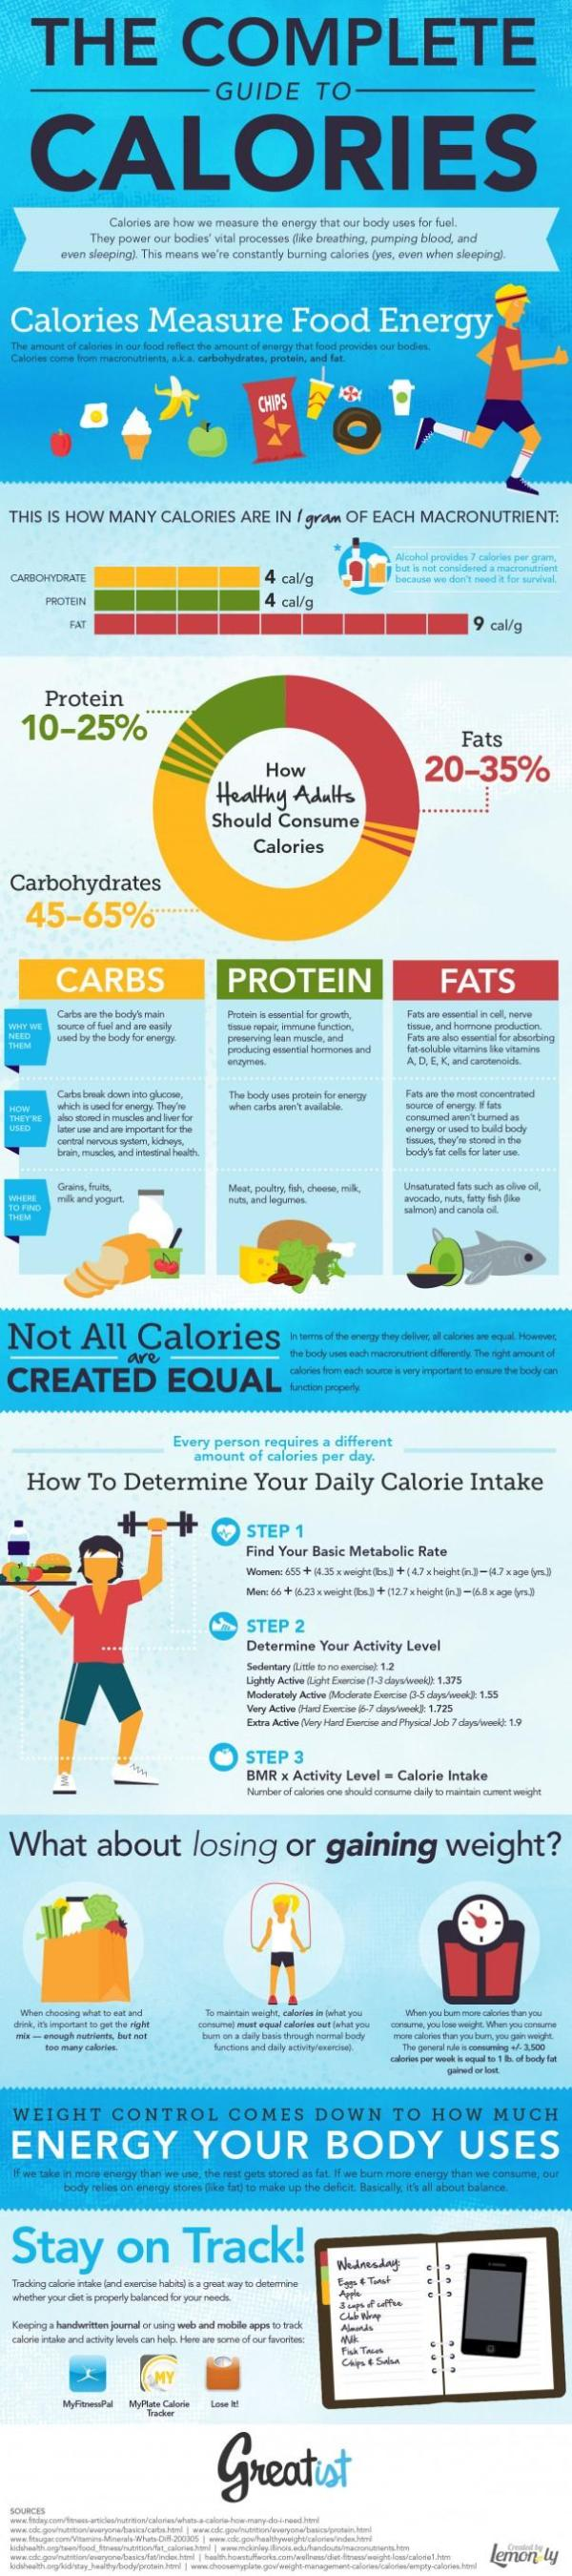 The-Complete-Guide-to-Calories-e1348595382955_0